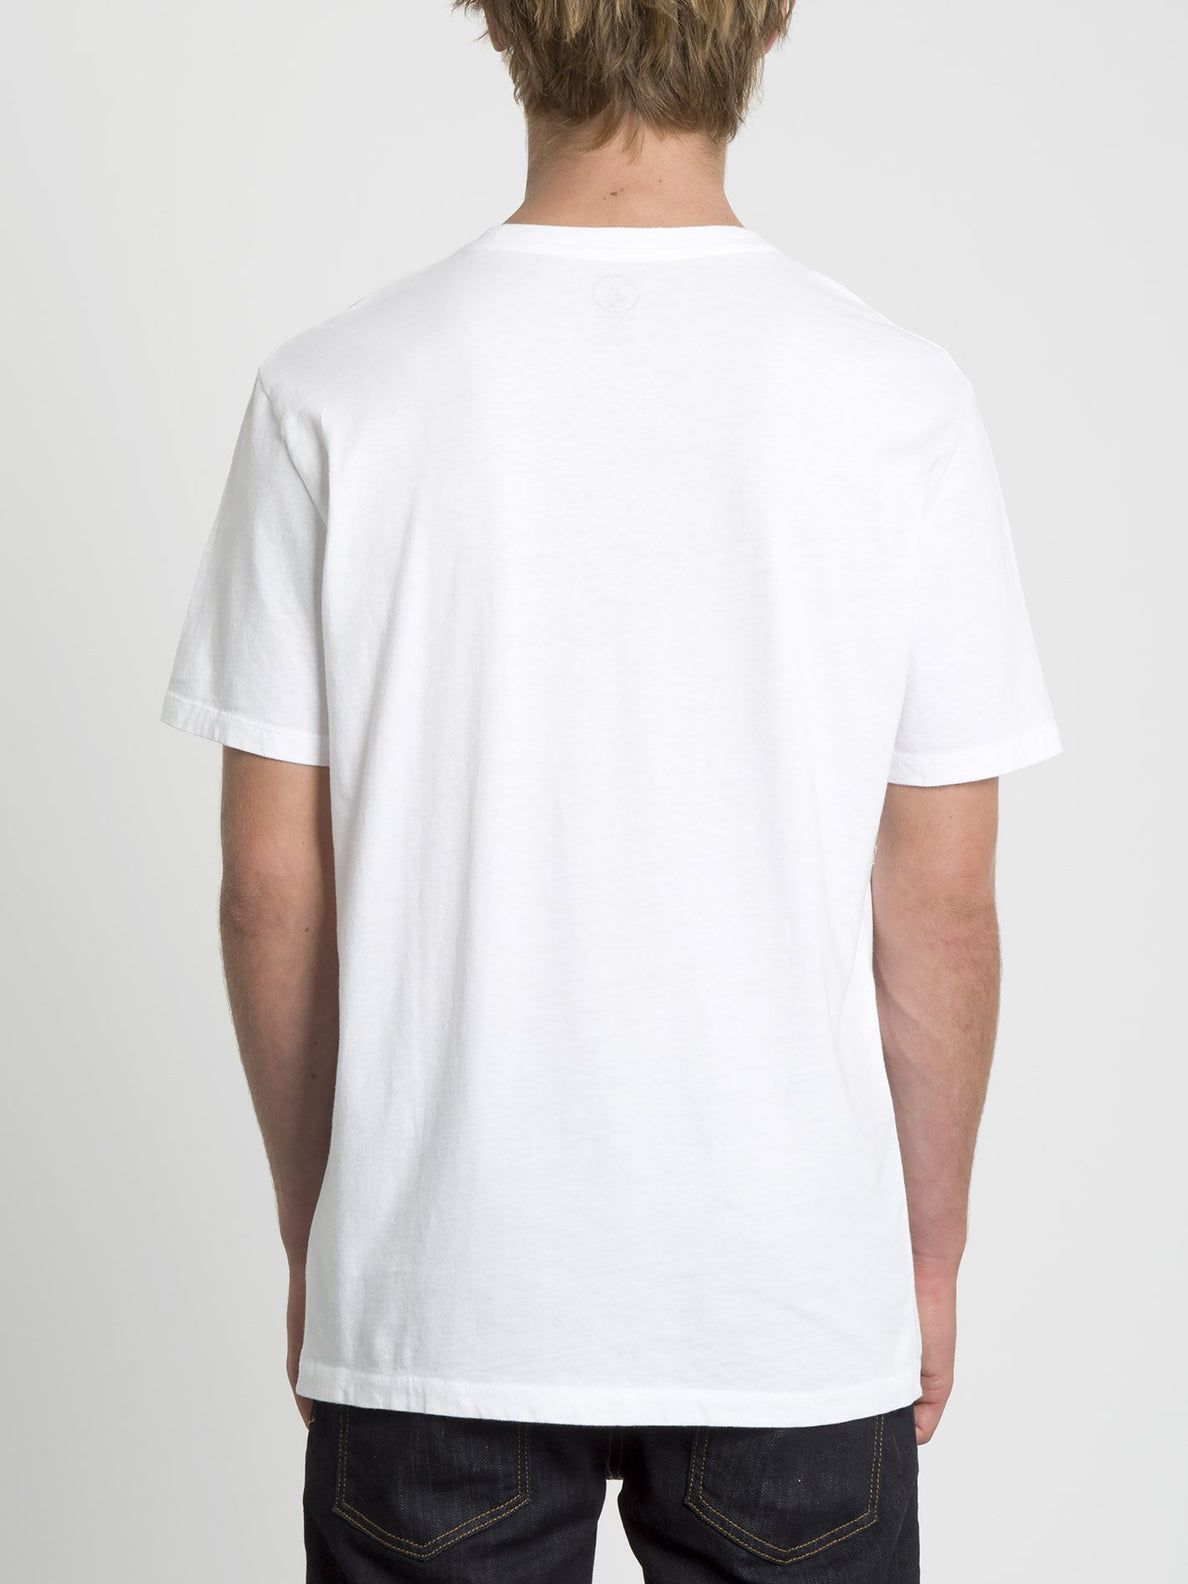 Crass Blanks T-shirt - White (A4331956_WHT) [B]